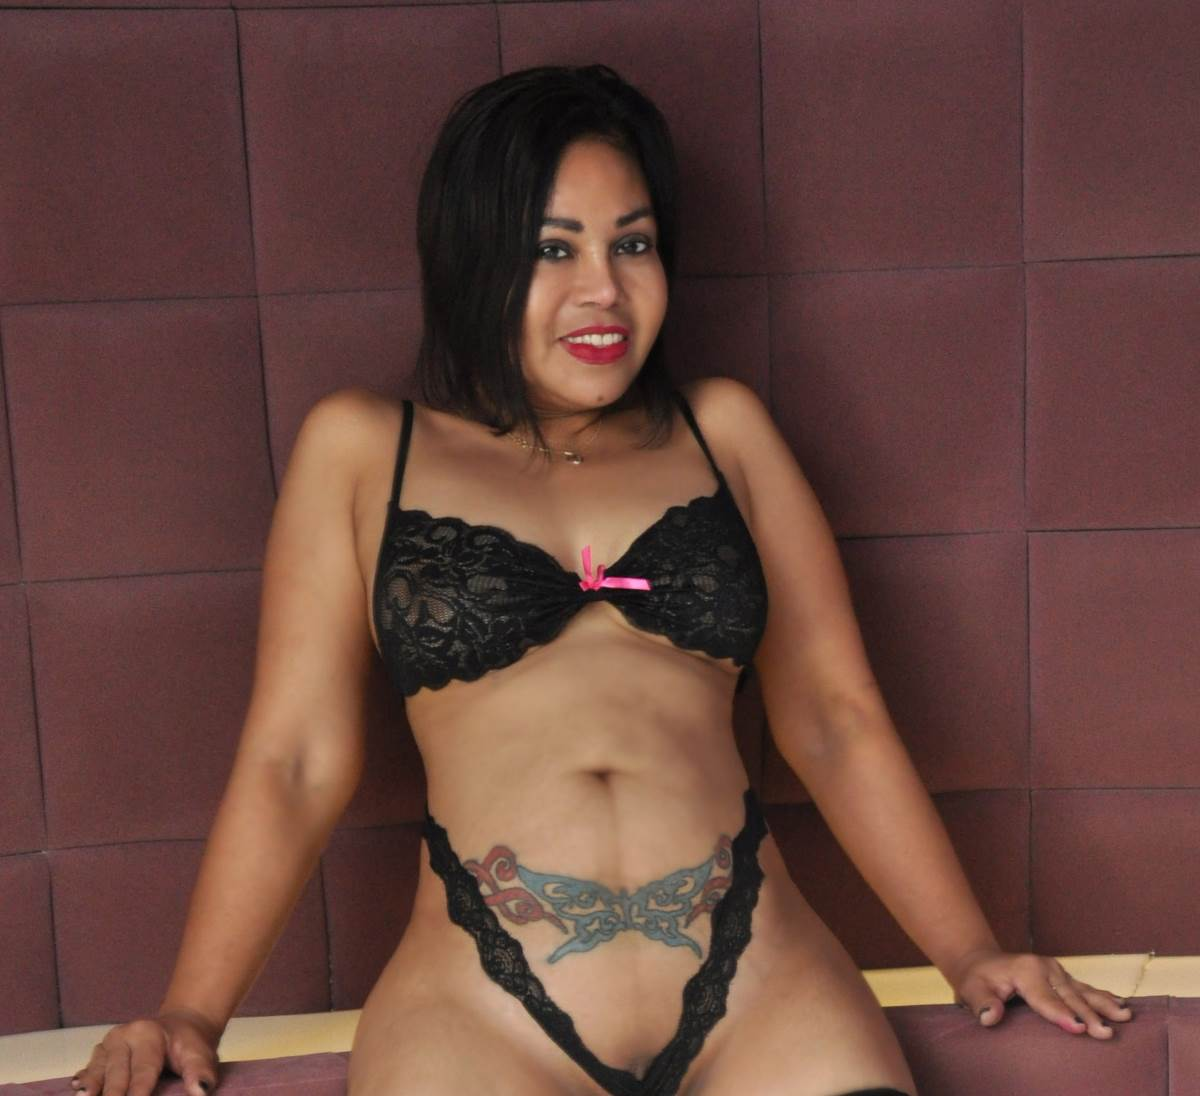 angie love escort